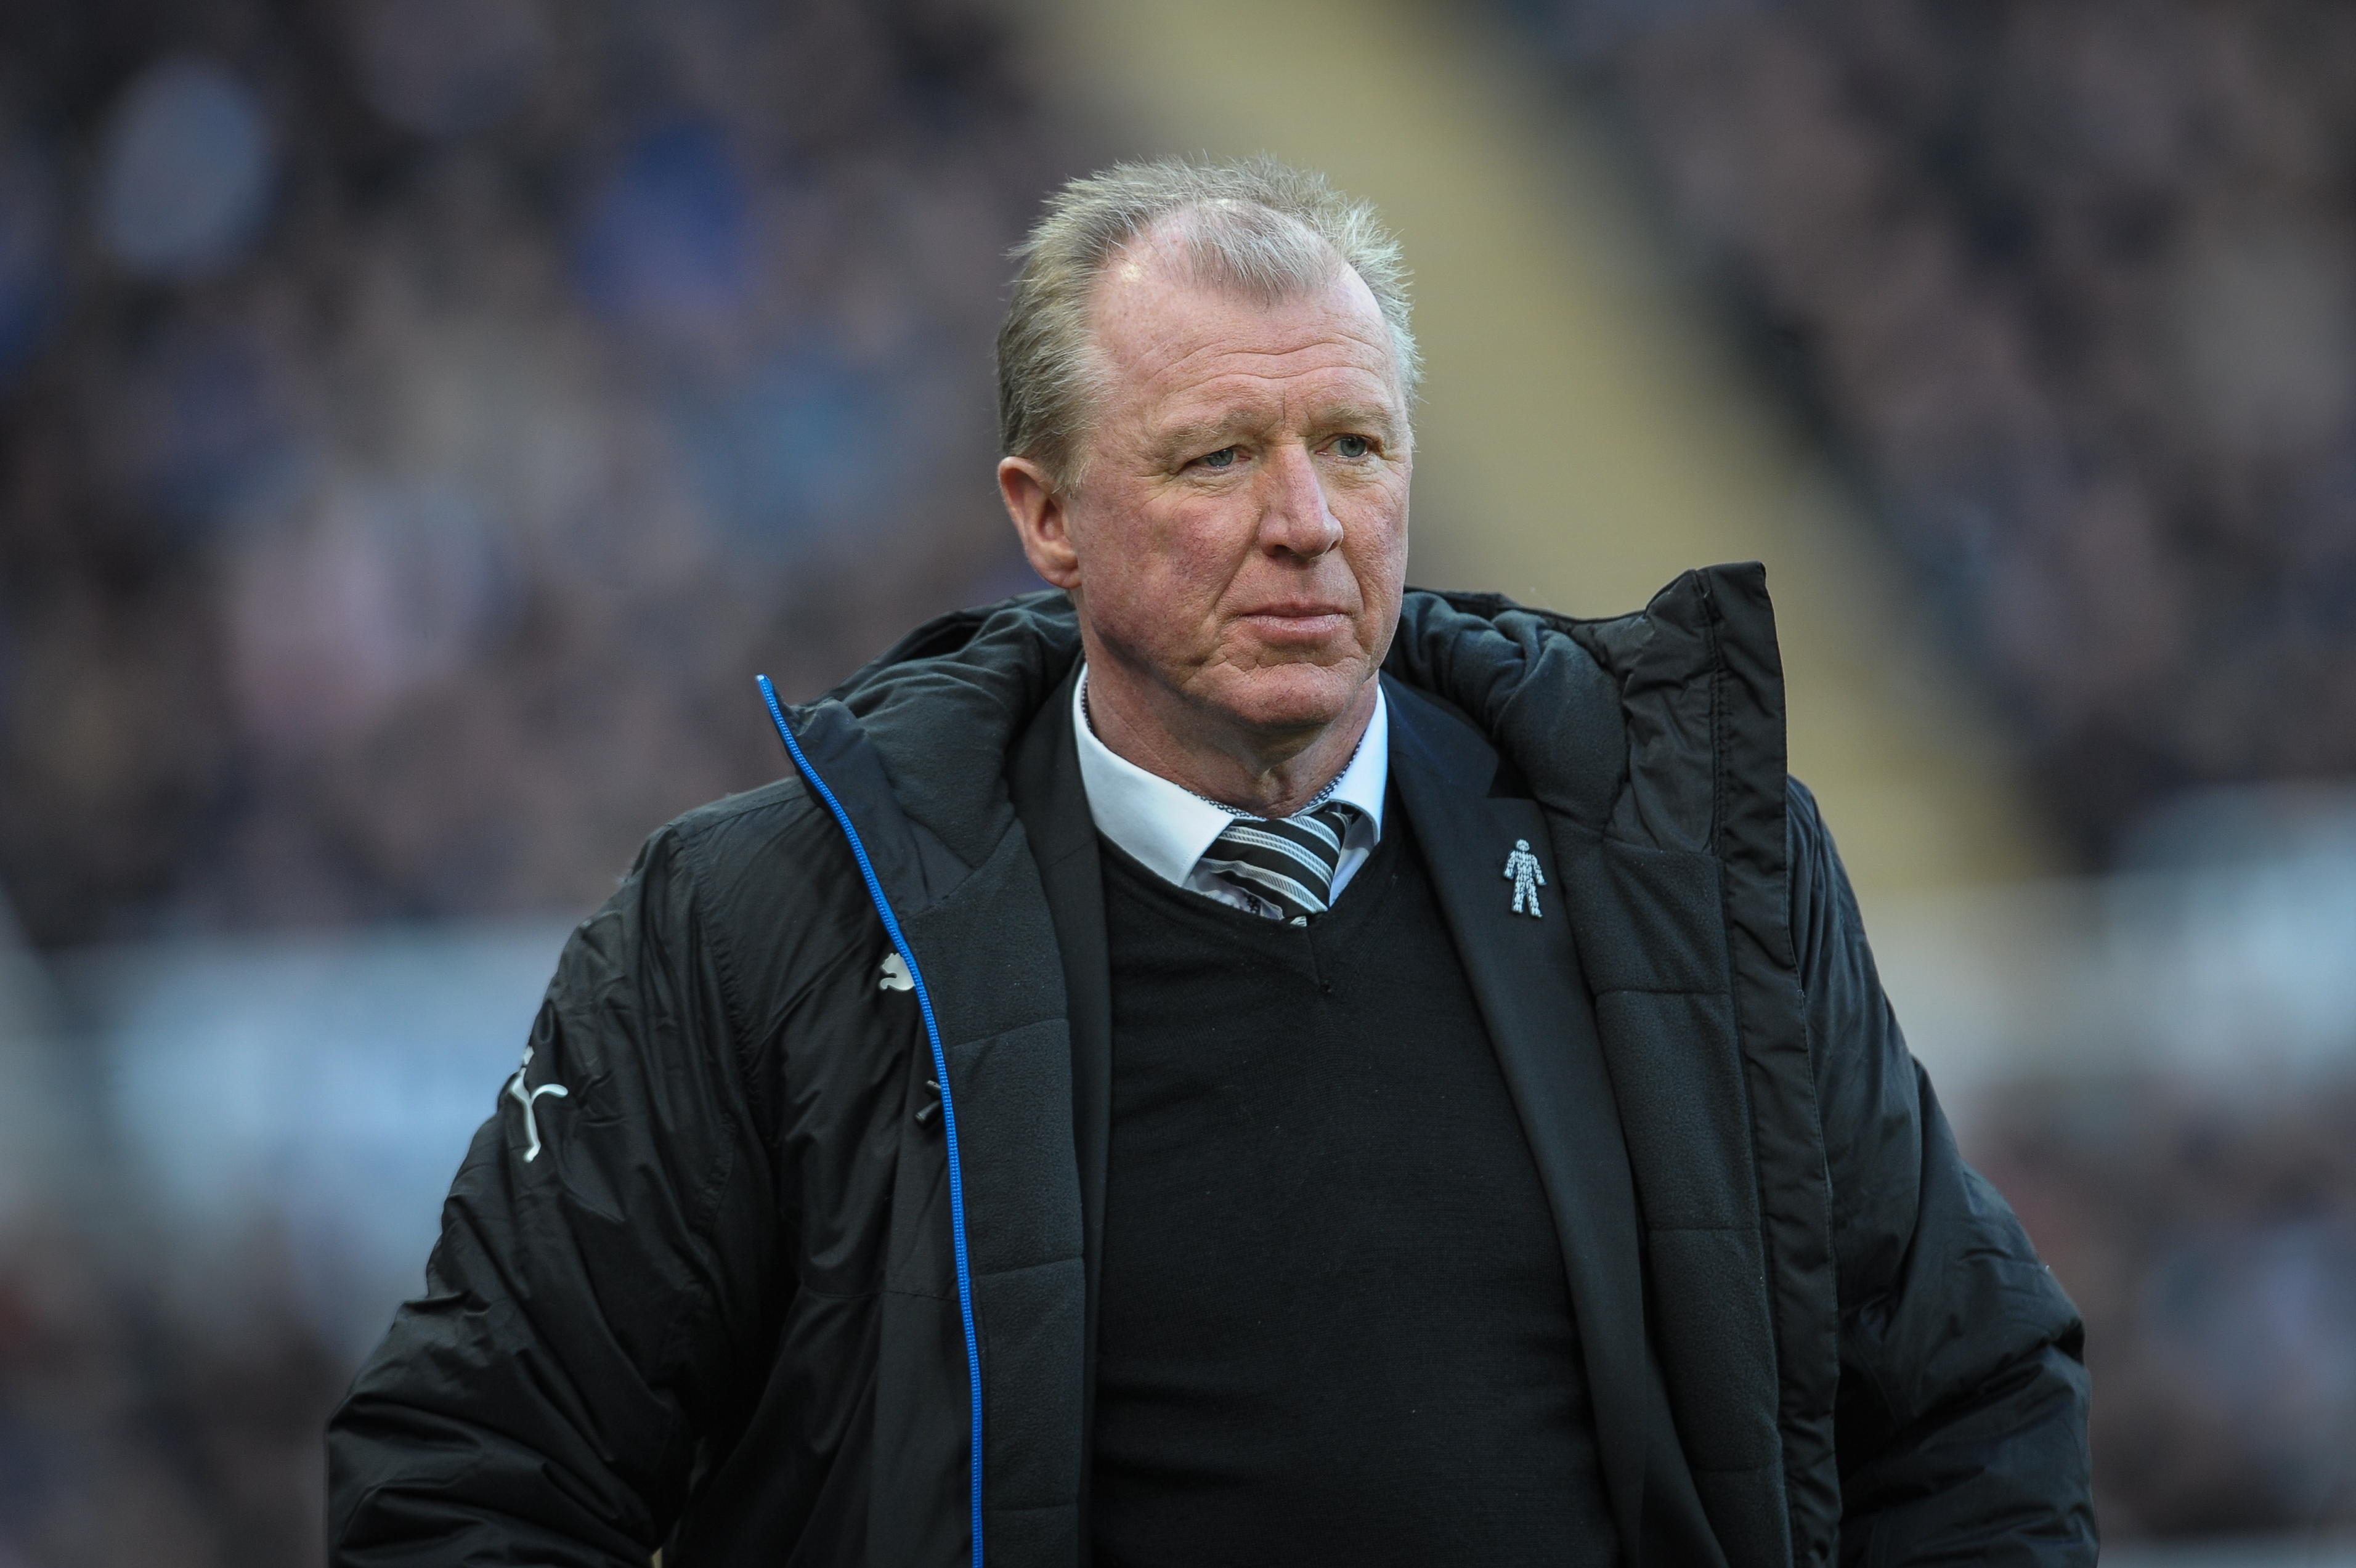 Newcastle in crisis talks over Steve McClaren future, David Moyes and Rafael Benitez in contention